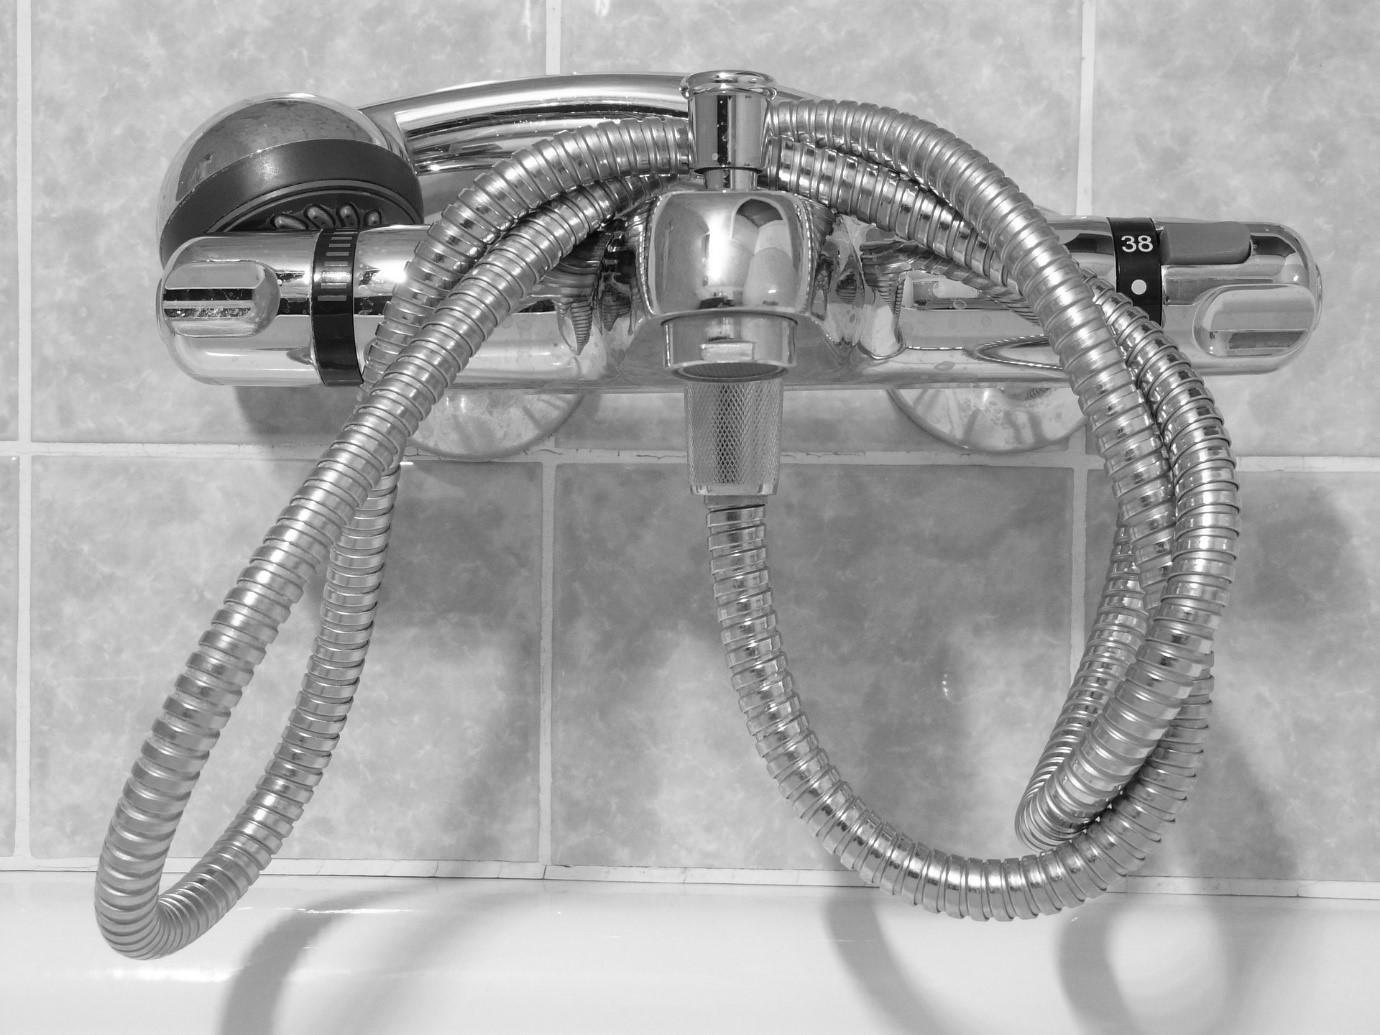 shower cartridge and handle